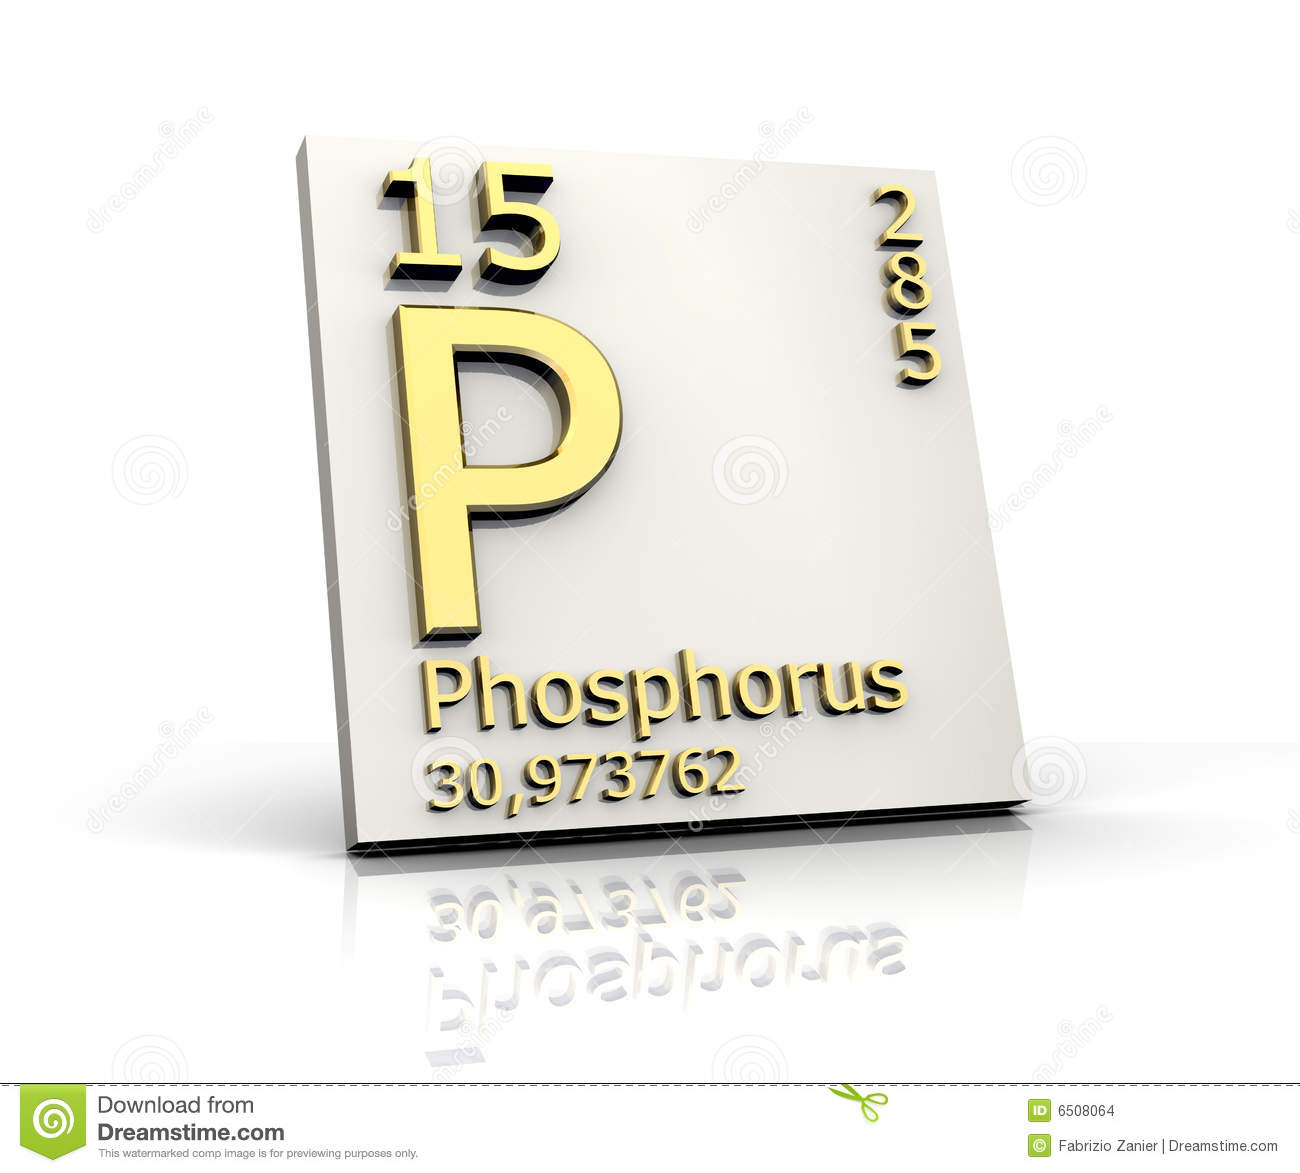 Phosphorus form periodic table of elements stock illustration phosphorus form periodic table of elements gamestrikefo Image collections